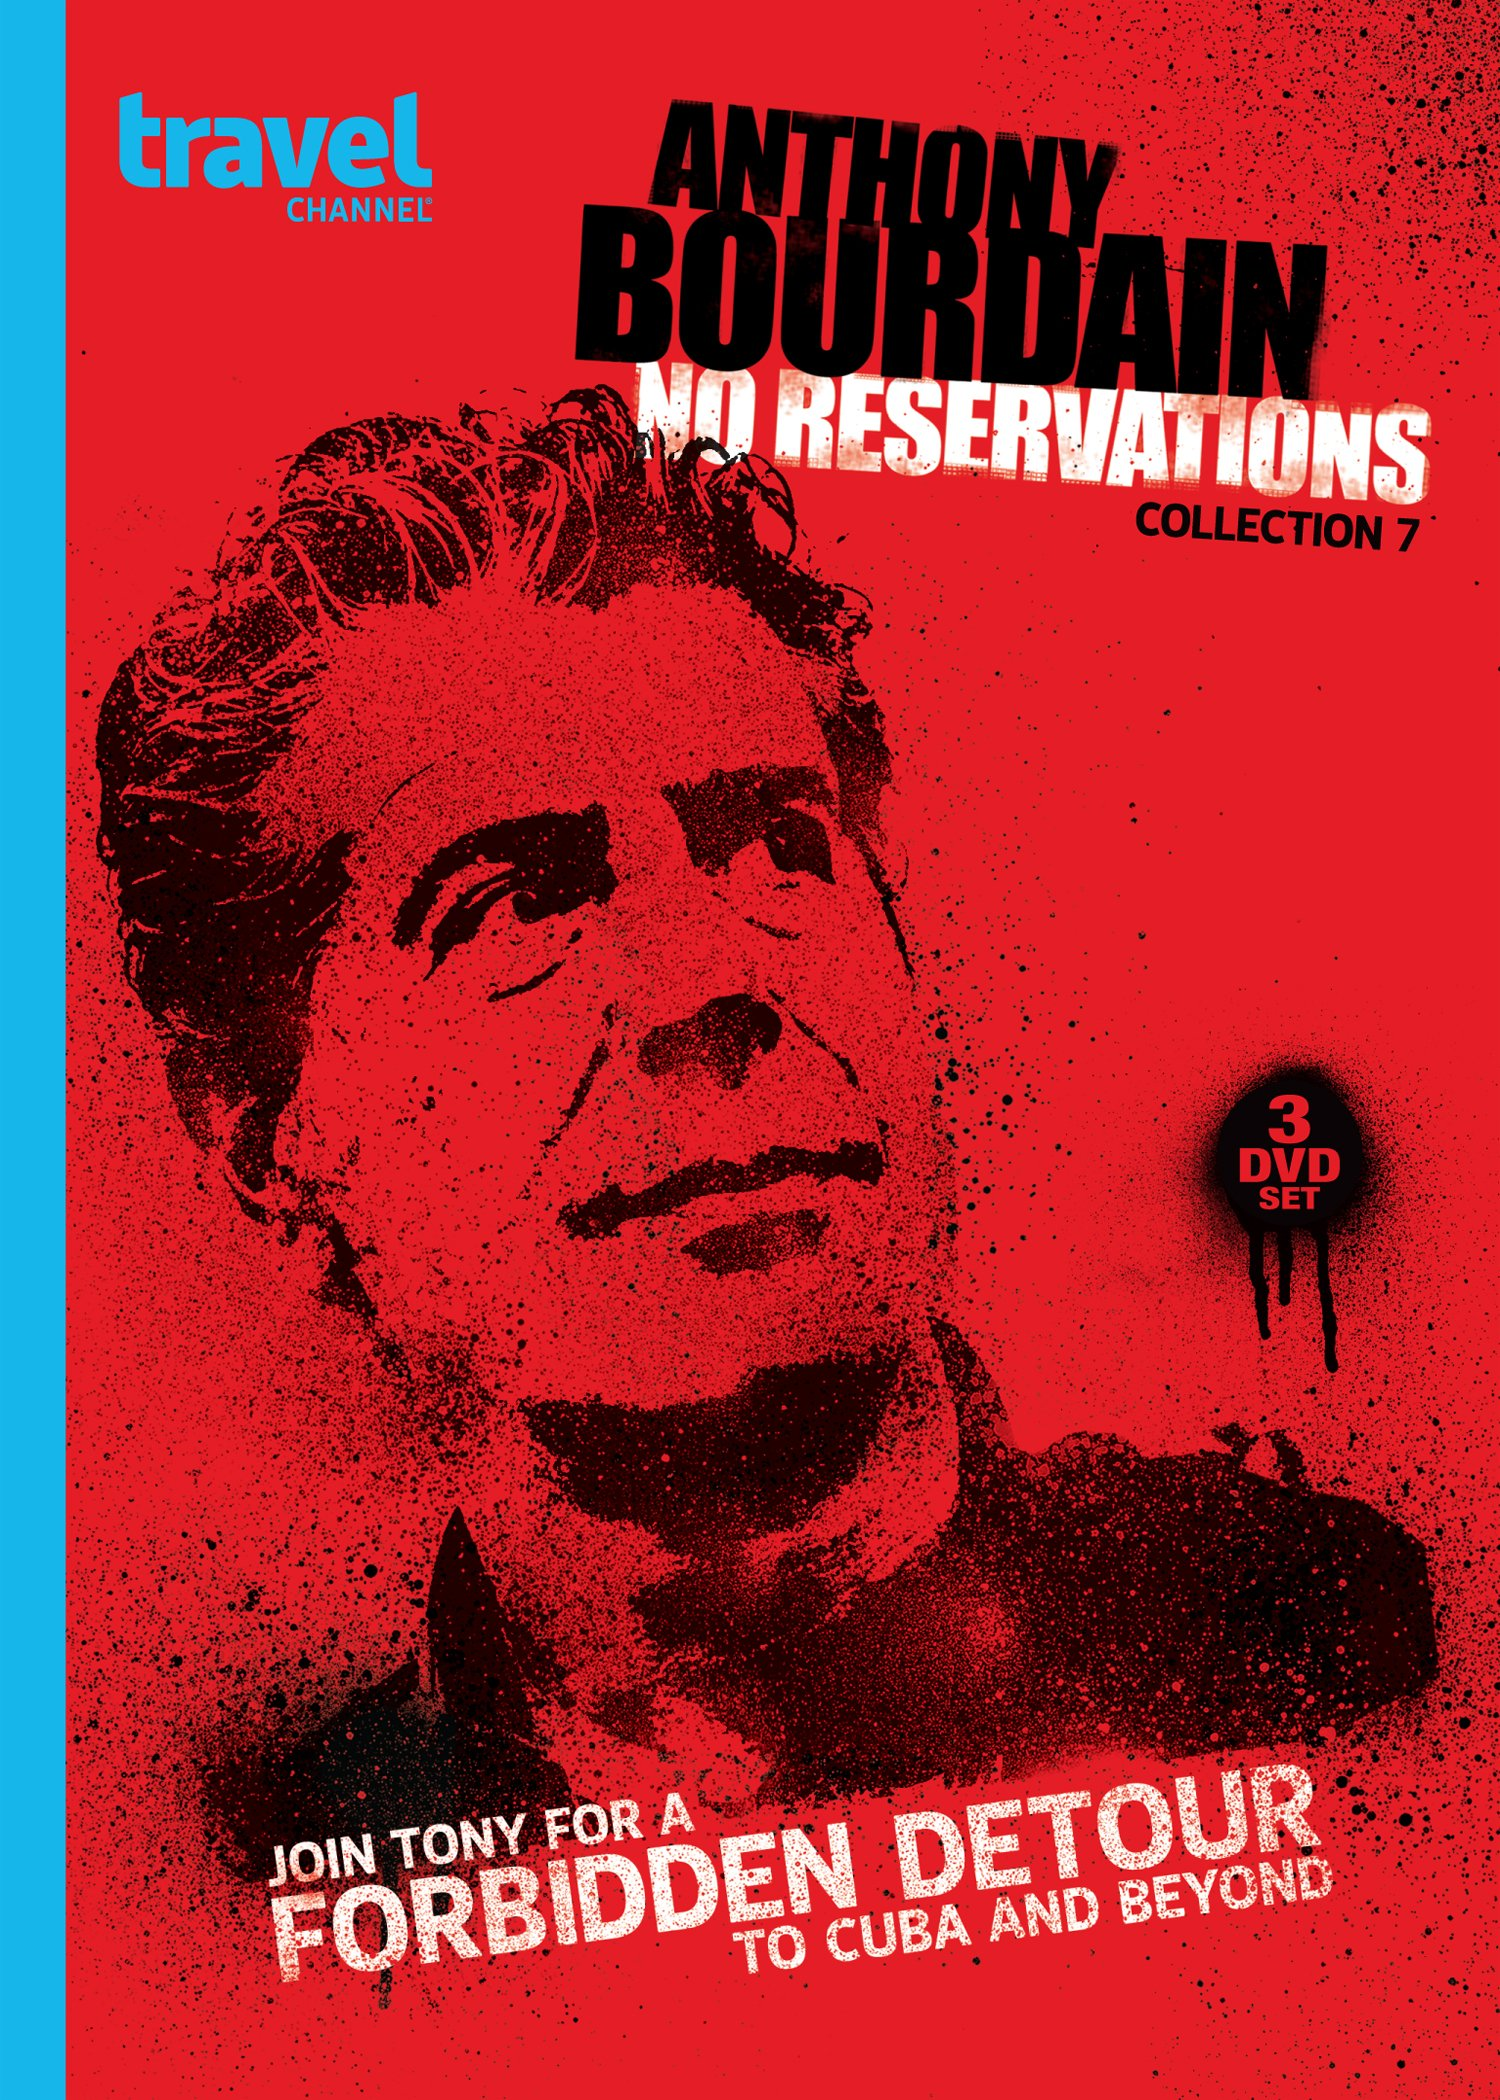 Anthony Bourdain: No Reservations Collection 7 by Travel Channel (Gaiam)